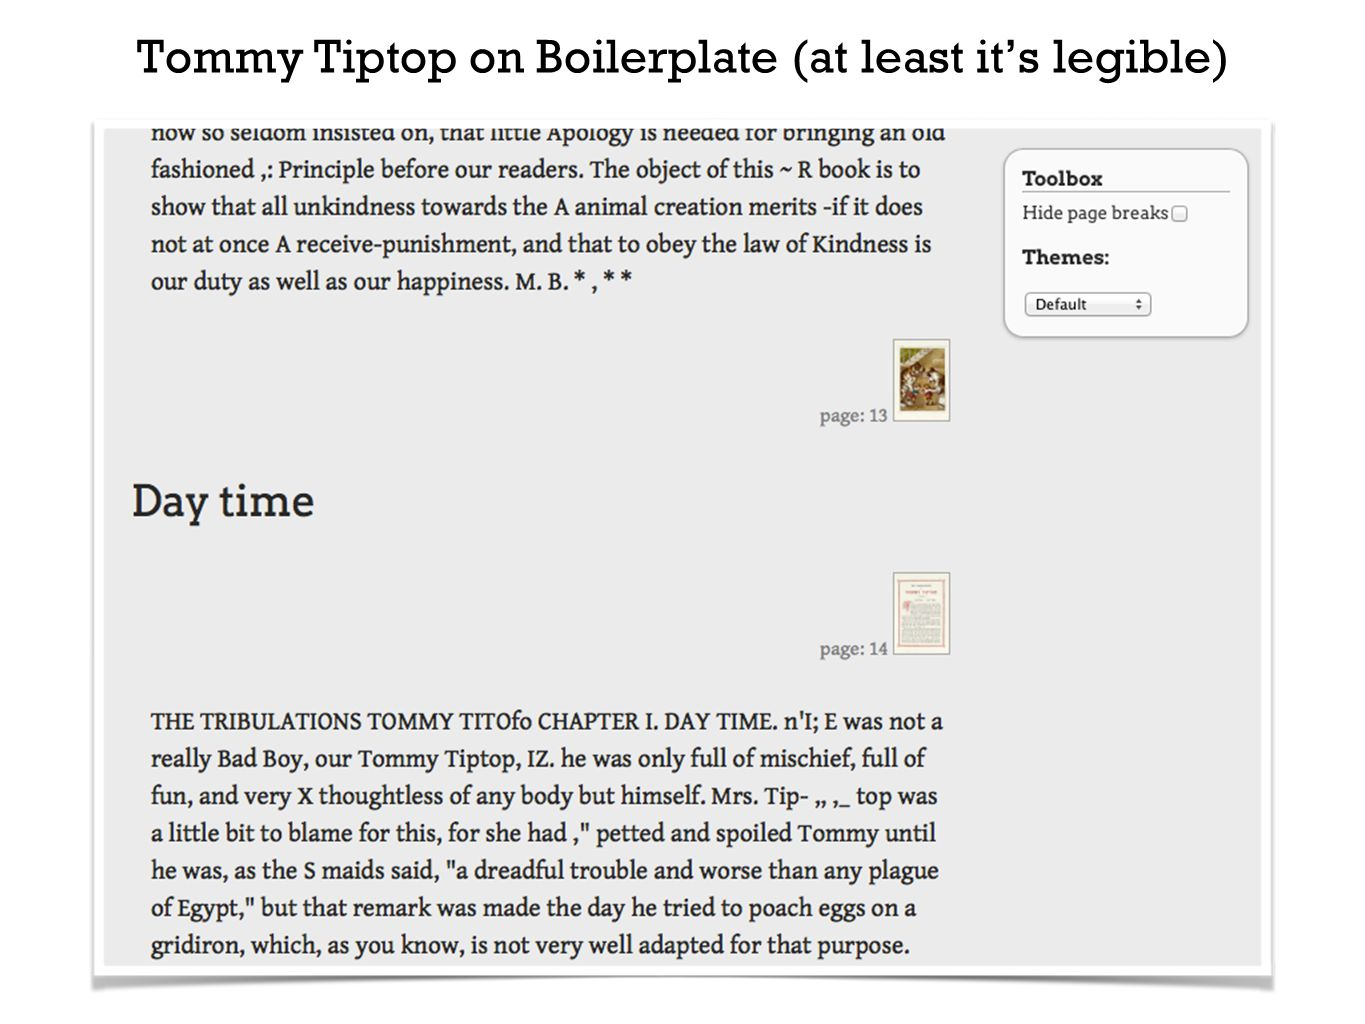 Tommy Tiptop on Boilerplate (at least it's legible)